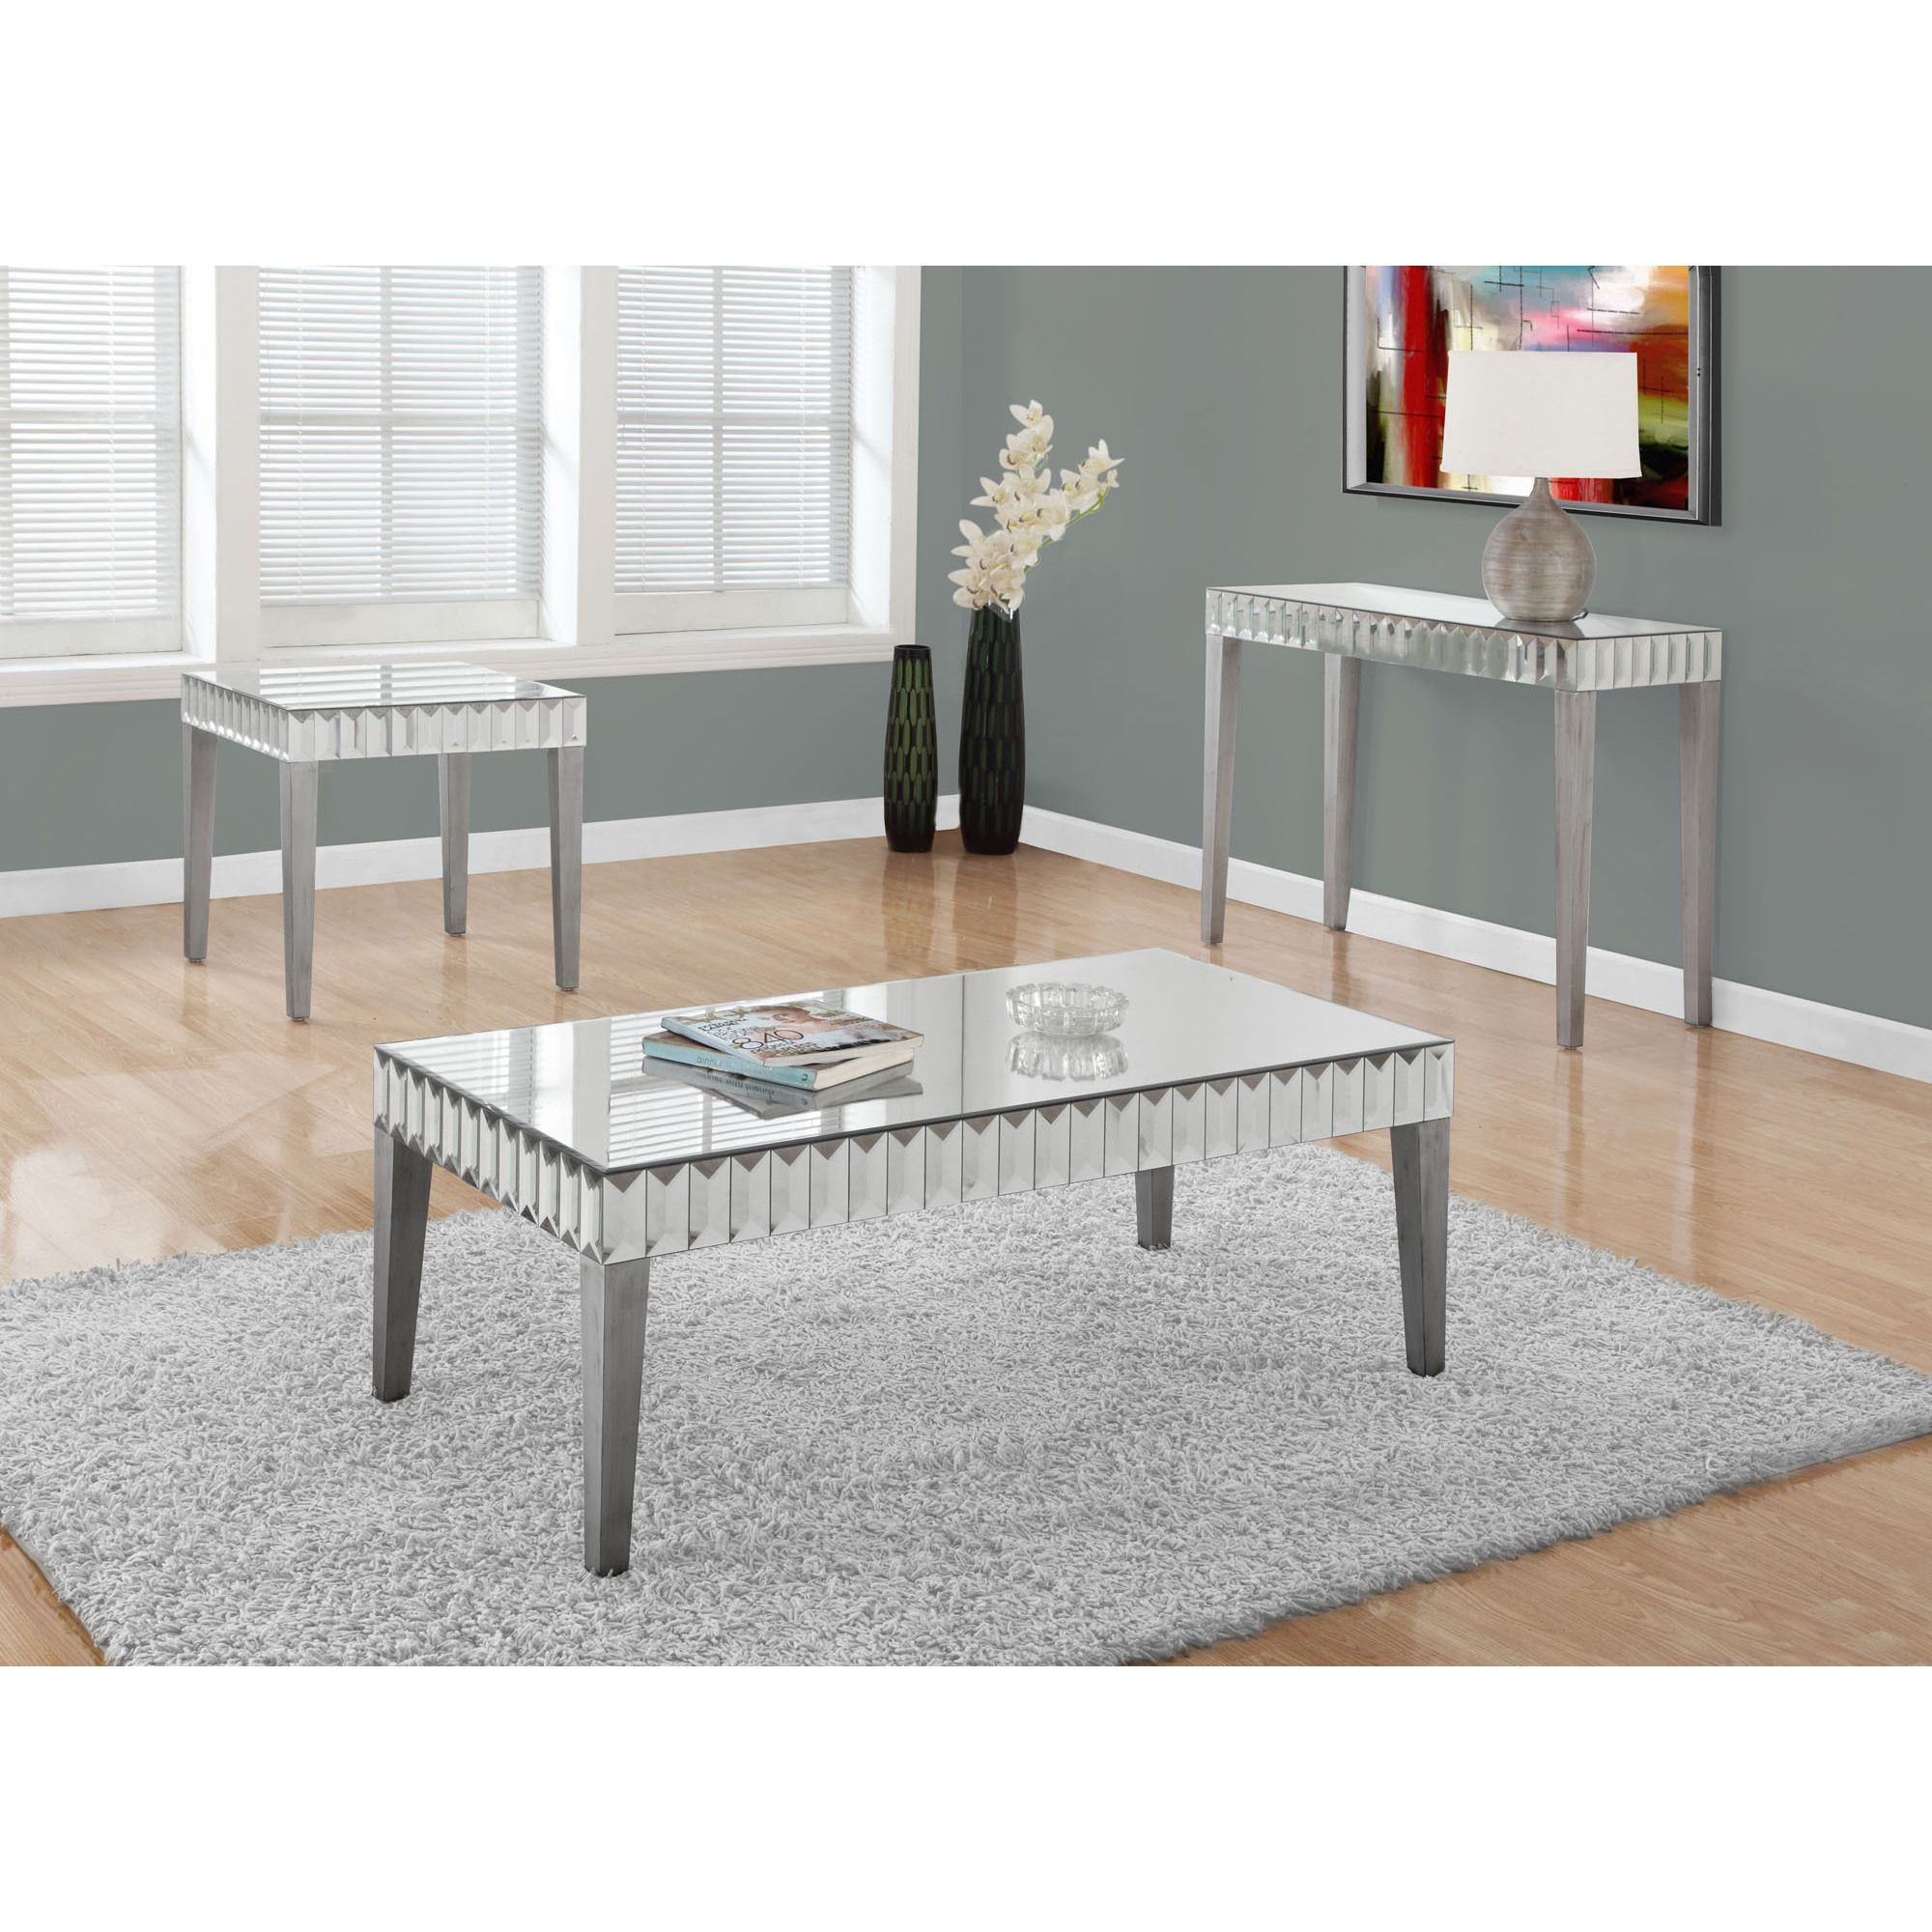 monarch coffee table brushed silver mirror mirrored accent bases for granite tops carved console ethan allen farm astoria patio dining set carpet dividers large antique wood